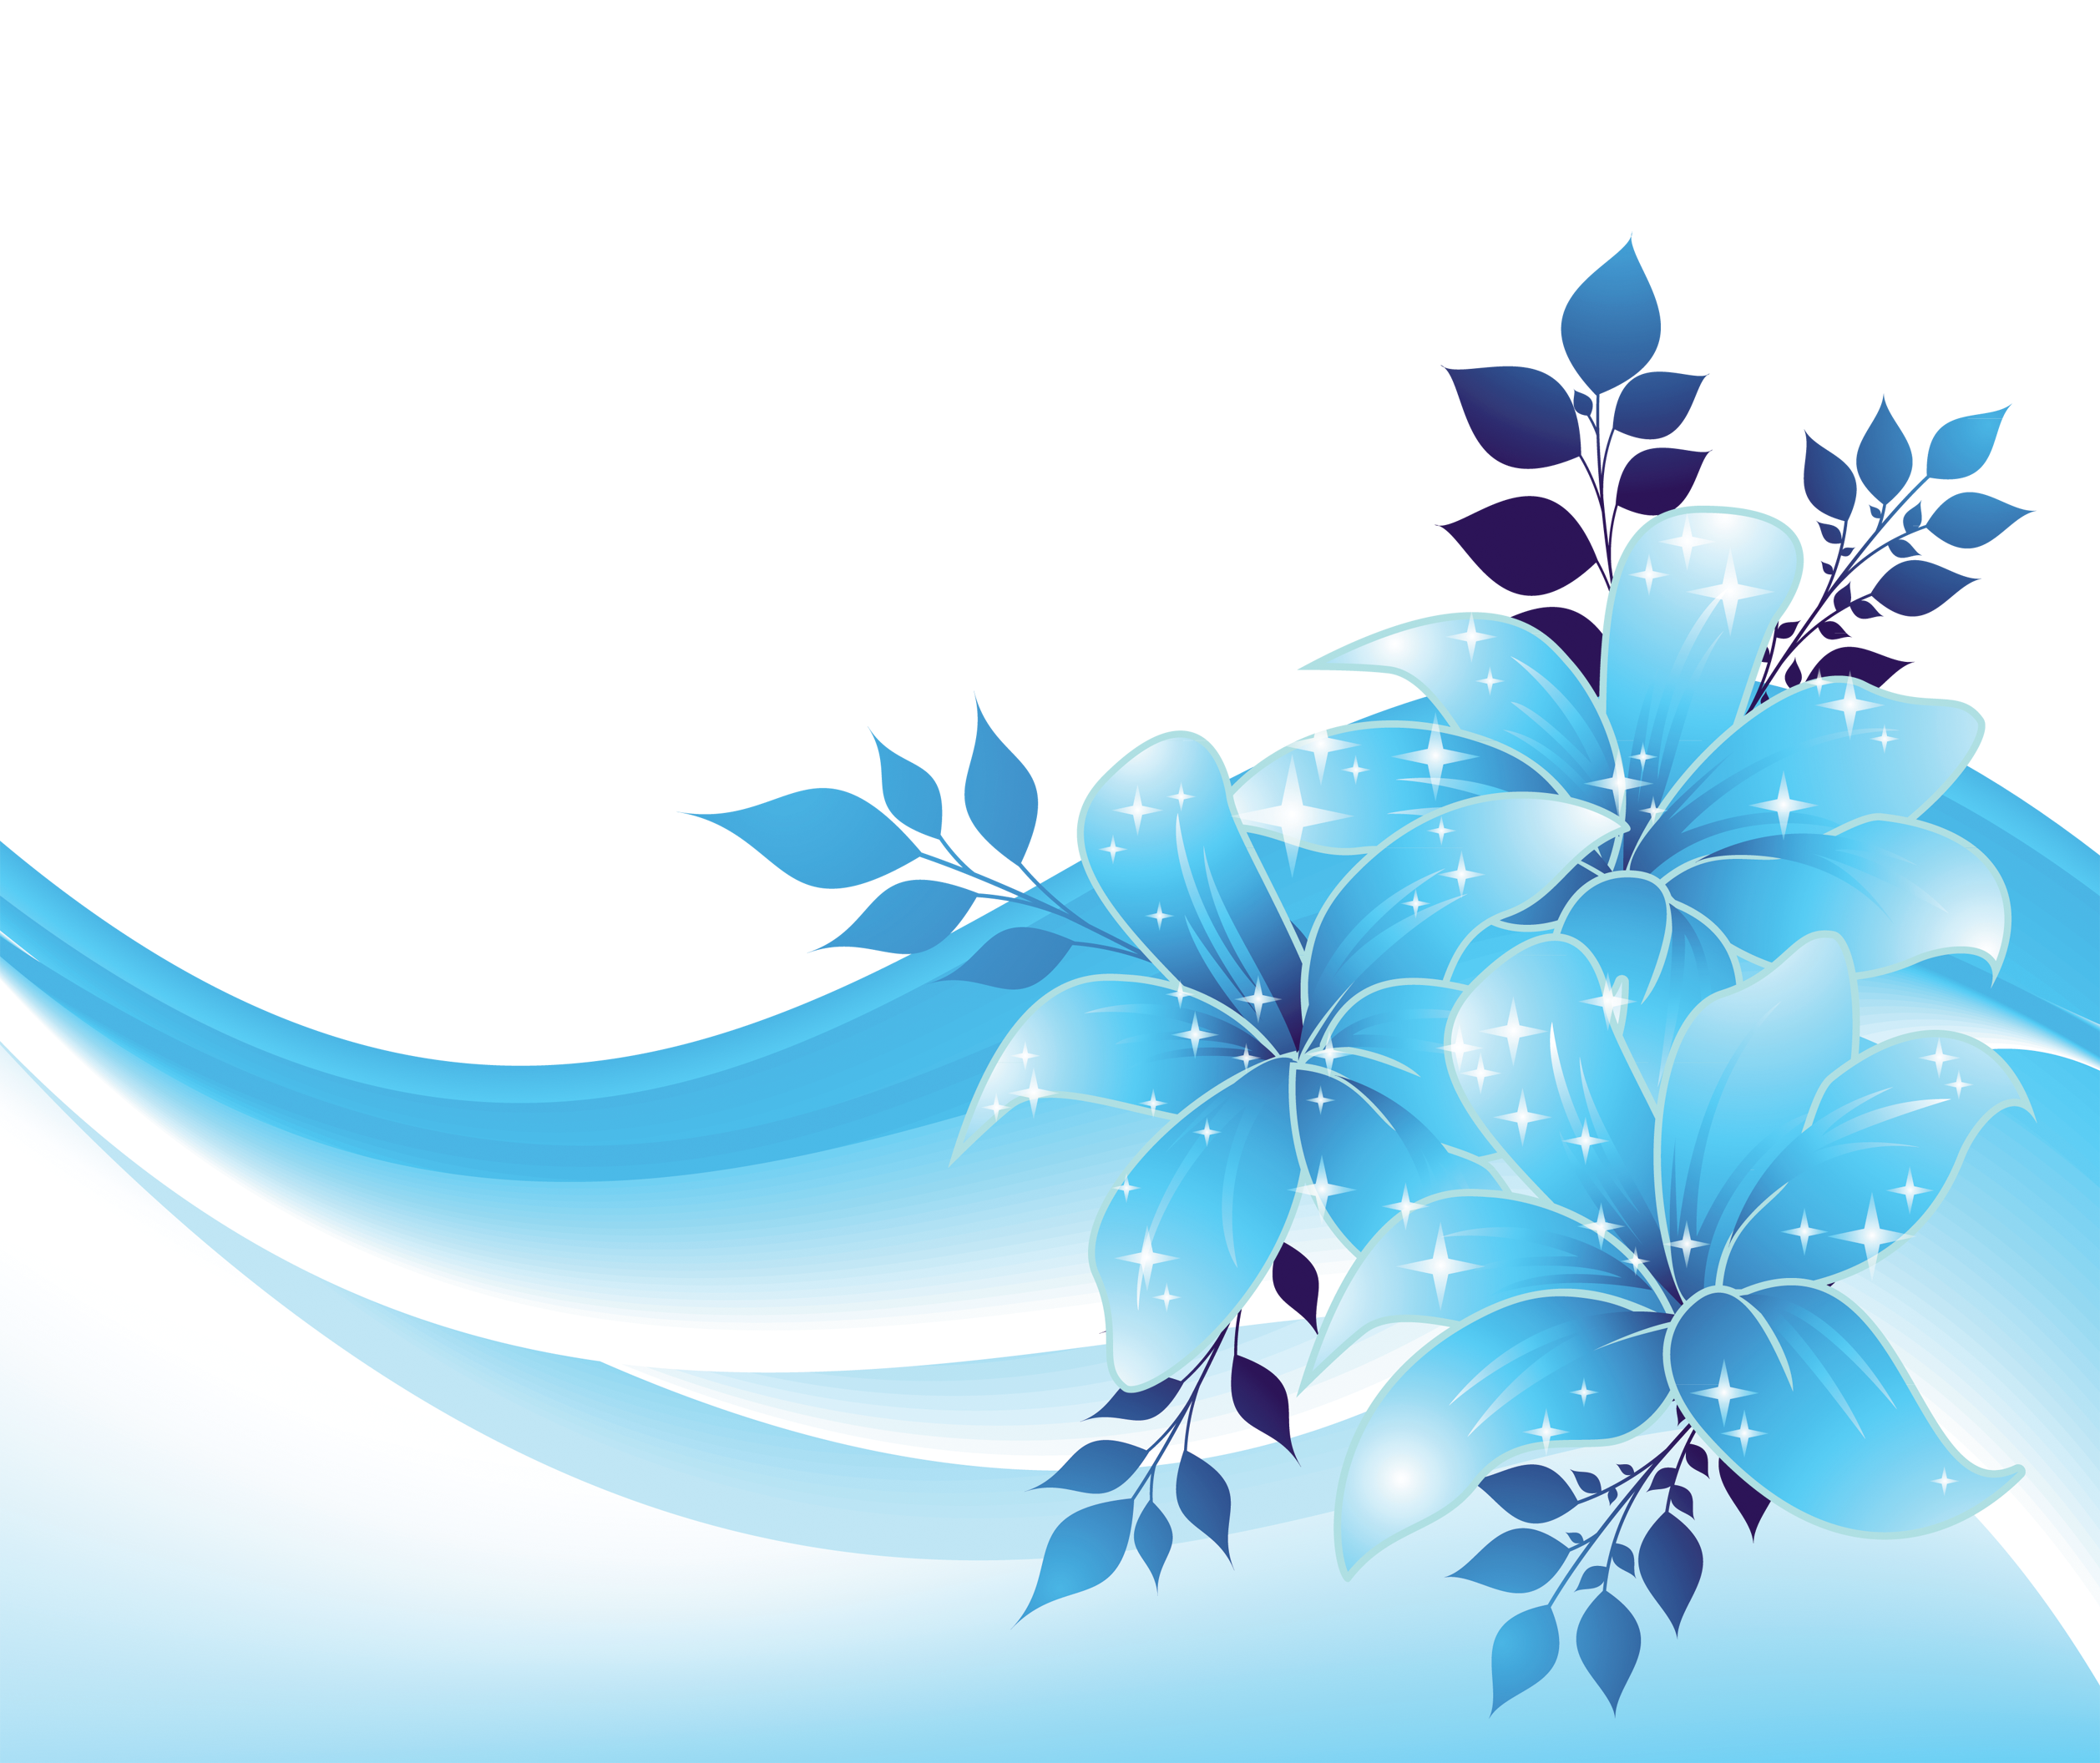 Free blue flower clipart clipart freeuse download Blue Flowers Images Group with 55 items clipart freeuse download